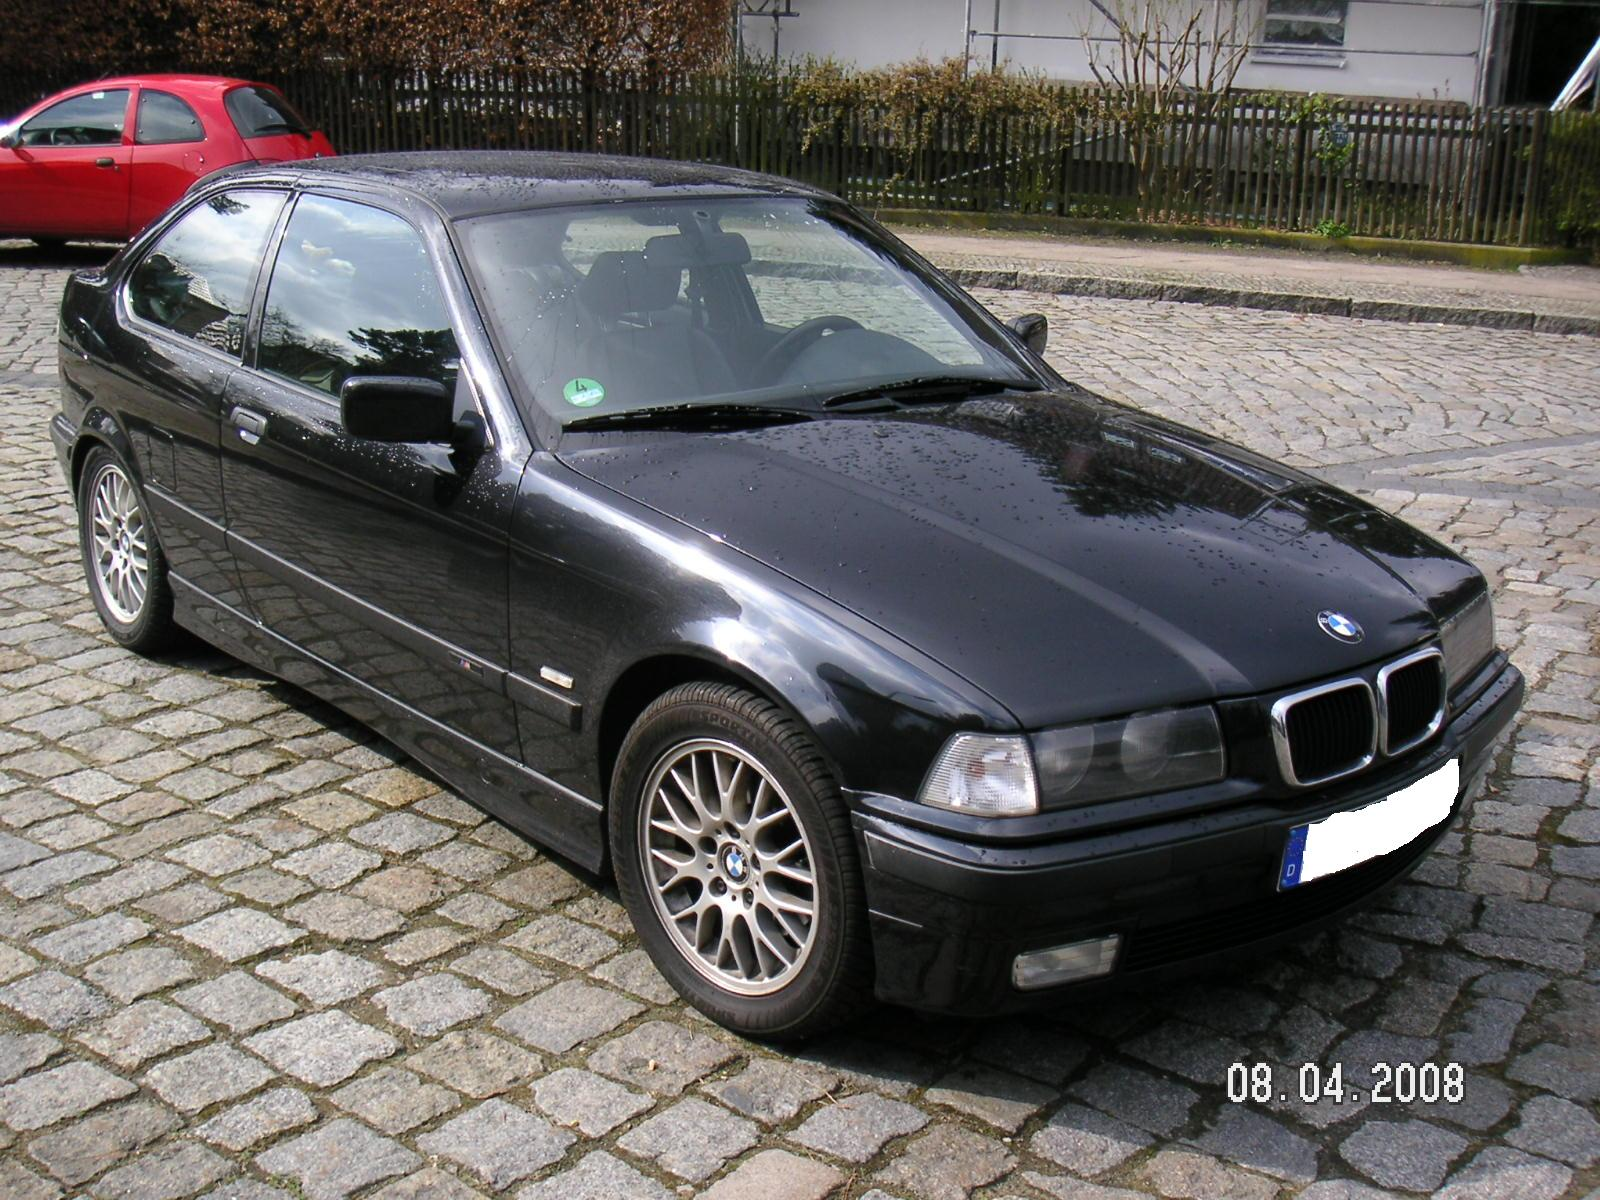 323i E46 owner how to watch williamhill full screen kontakt williamhill online - Need advice for fixing up my car - Bimmerfest - BMW ...